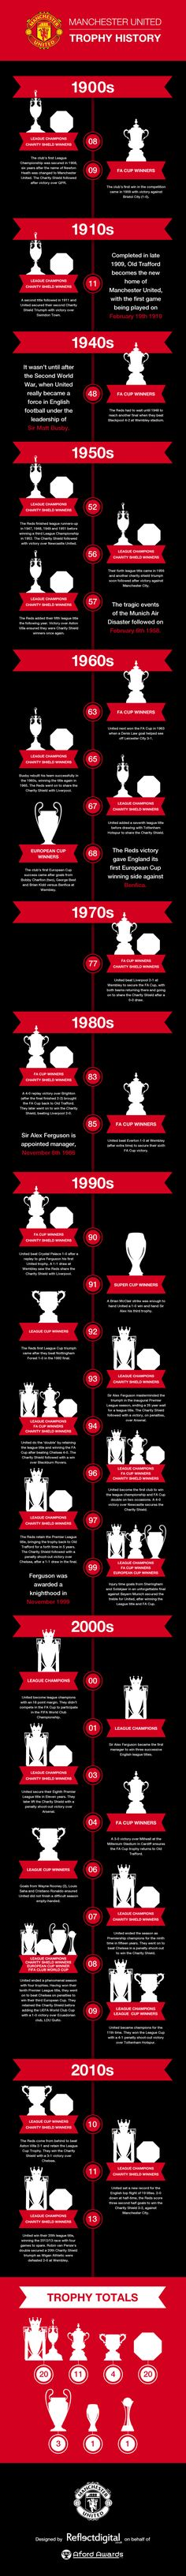 Man Utd Football Trophies